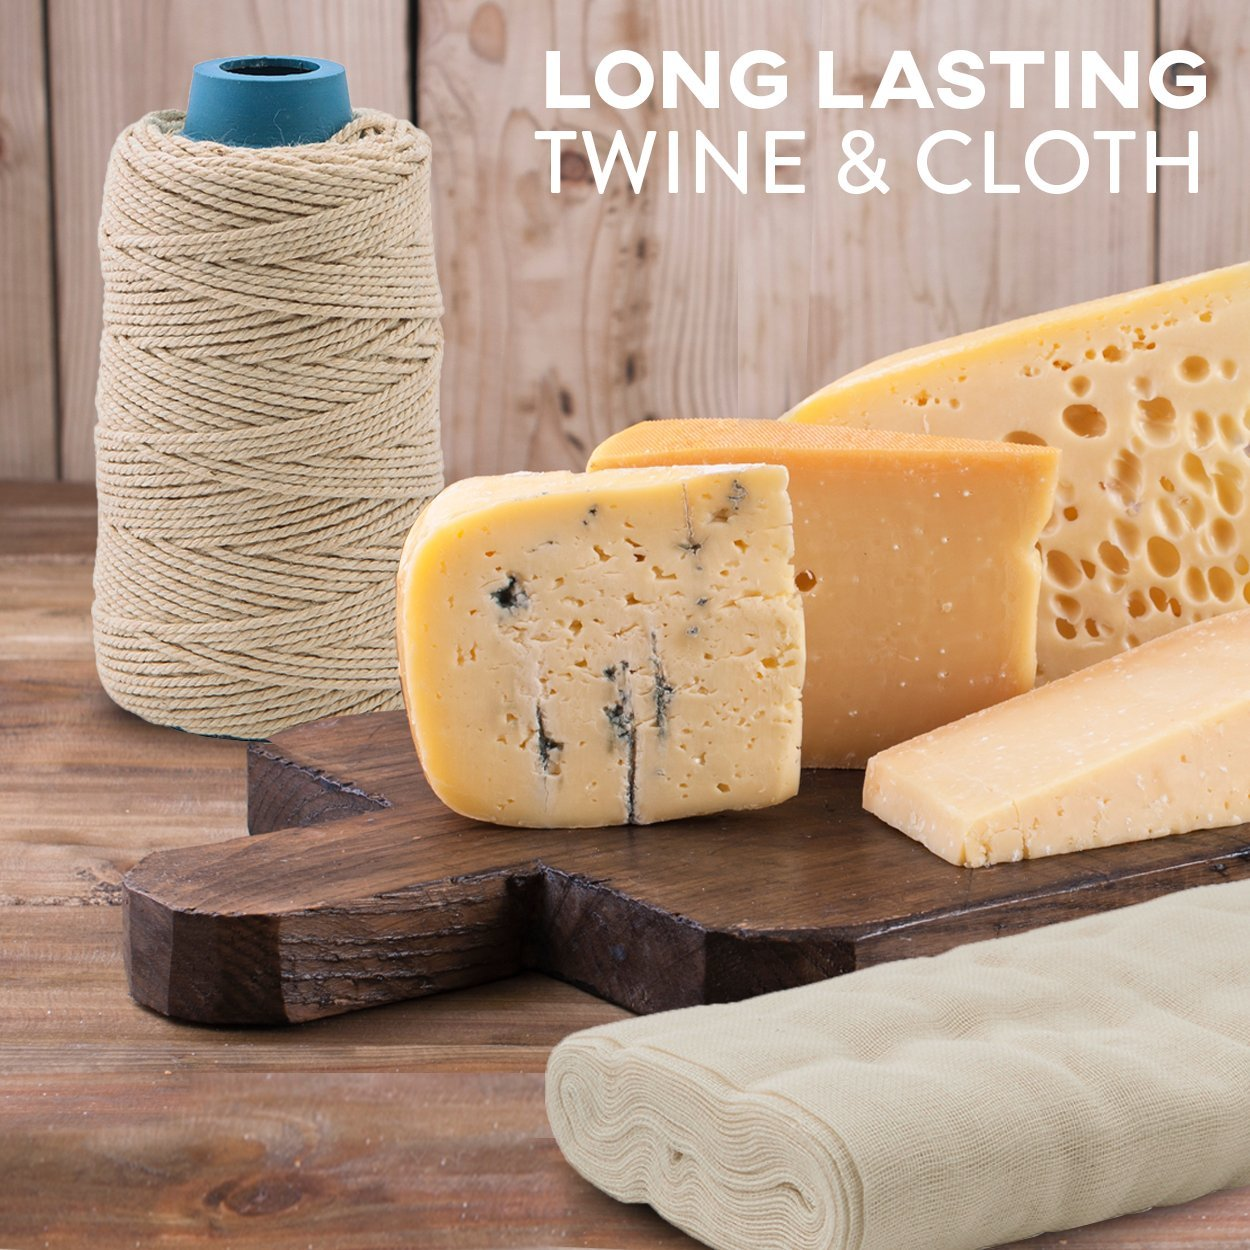 Cheesecloth and Cooking Twine - by Kitchen Gizmo, Grade 50 100% Unbleached Cotton (5 Yards/45 Sq. Feet) Cheese Cloth for Straining with 220 Ft Butchers Twine by Kitchen Gizmo (Image #3)